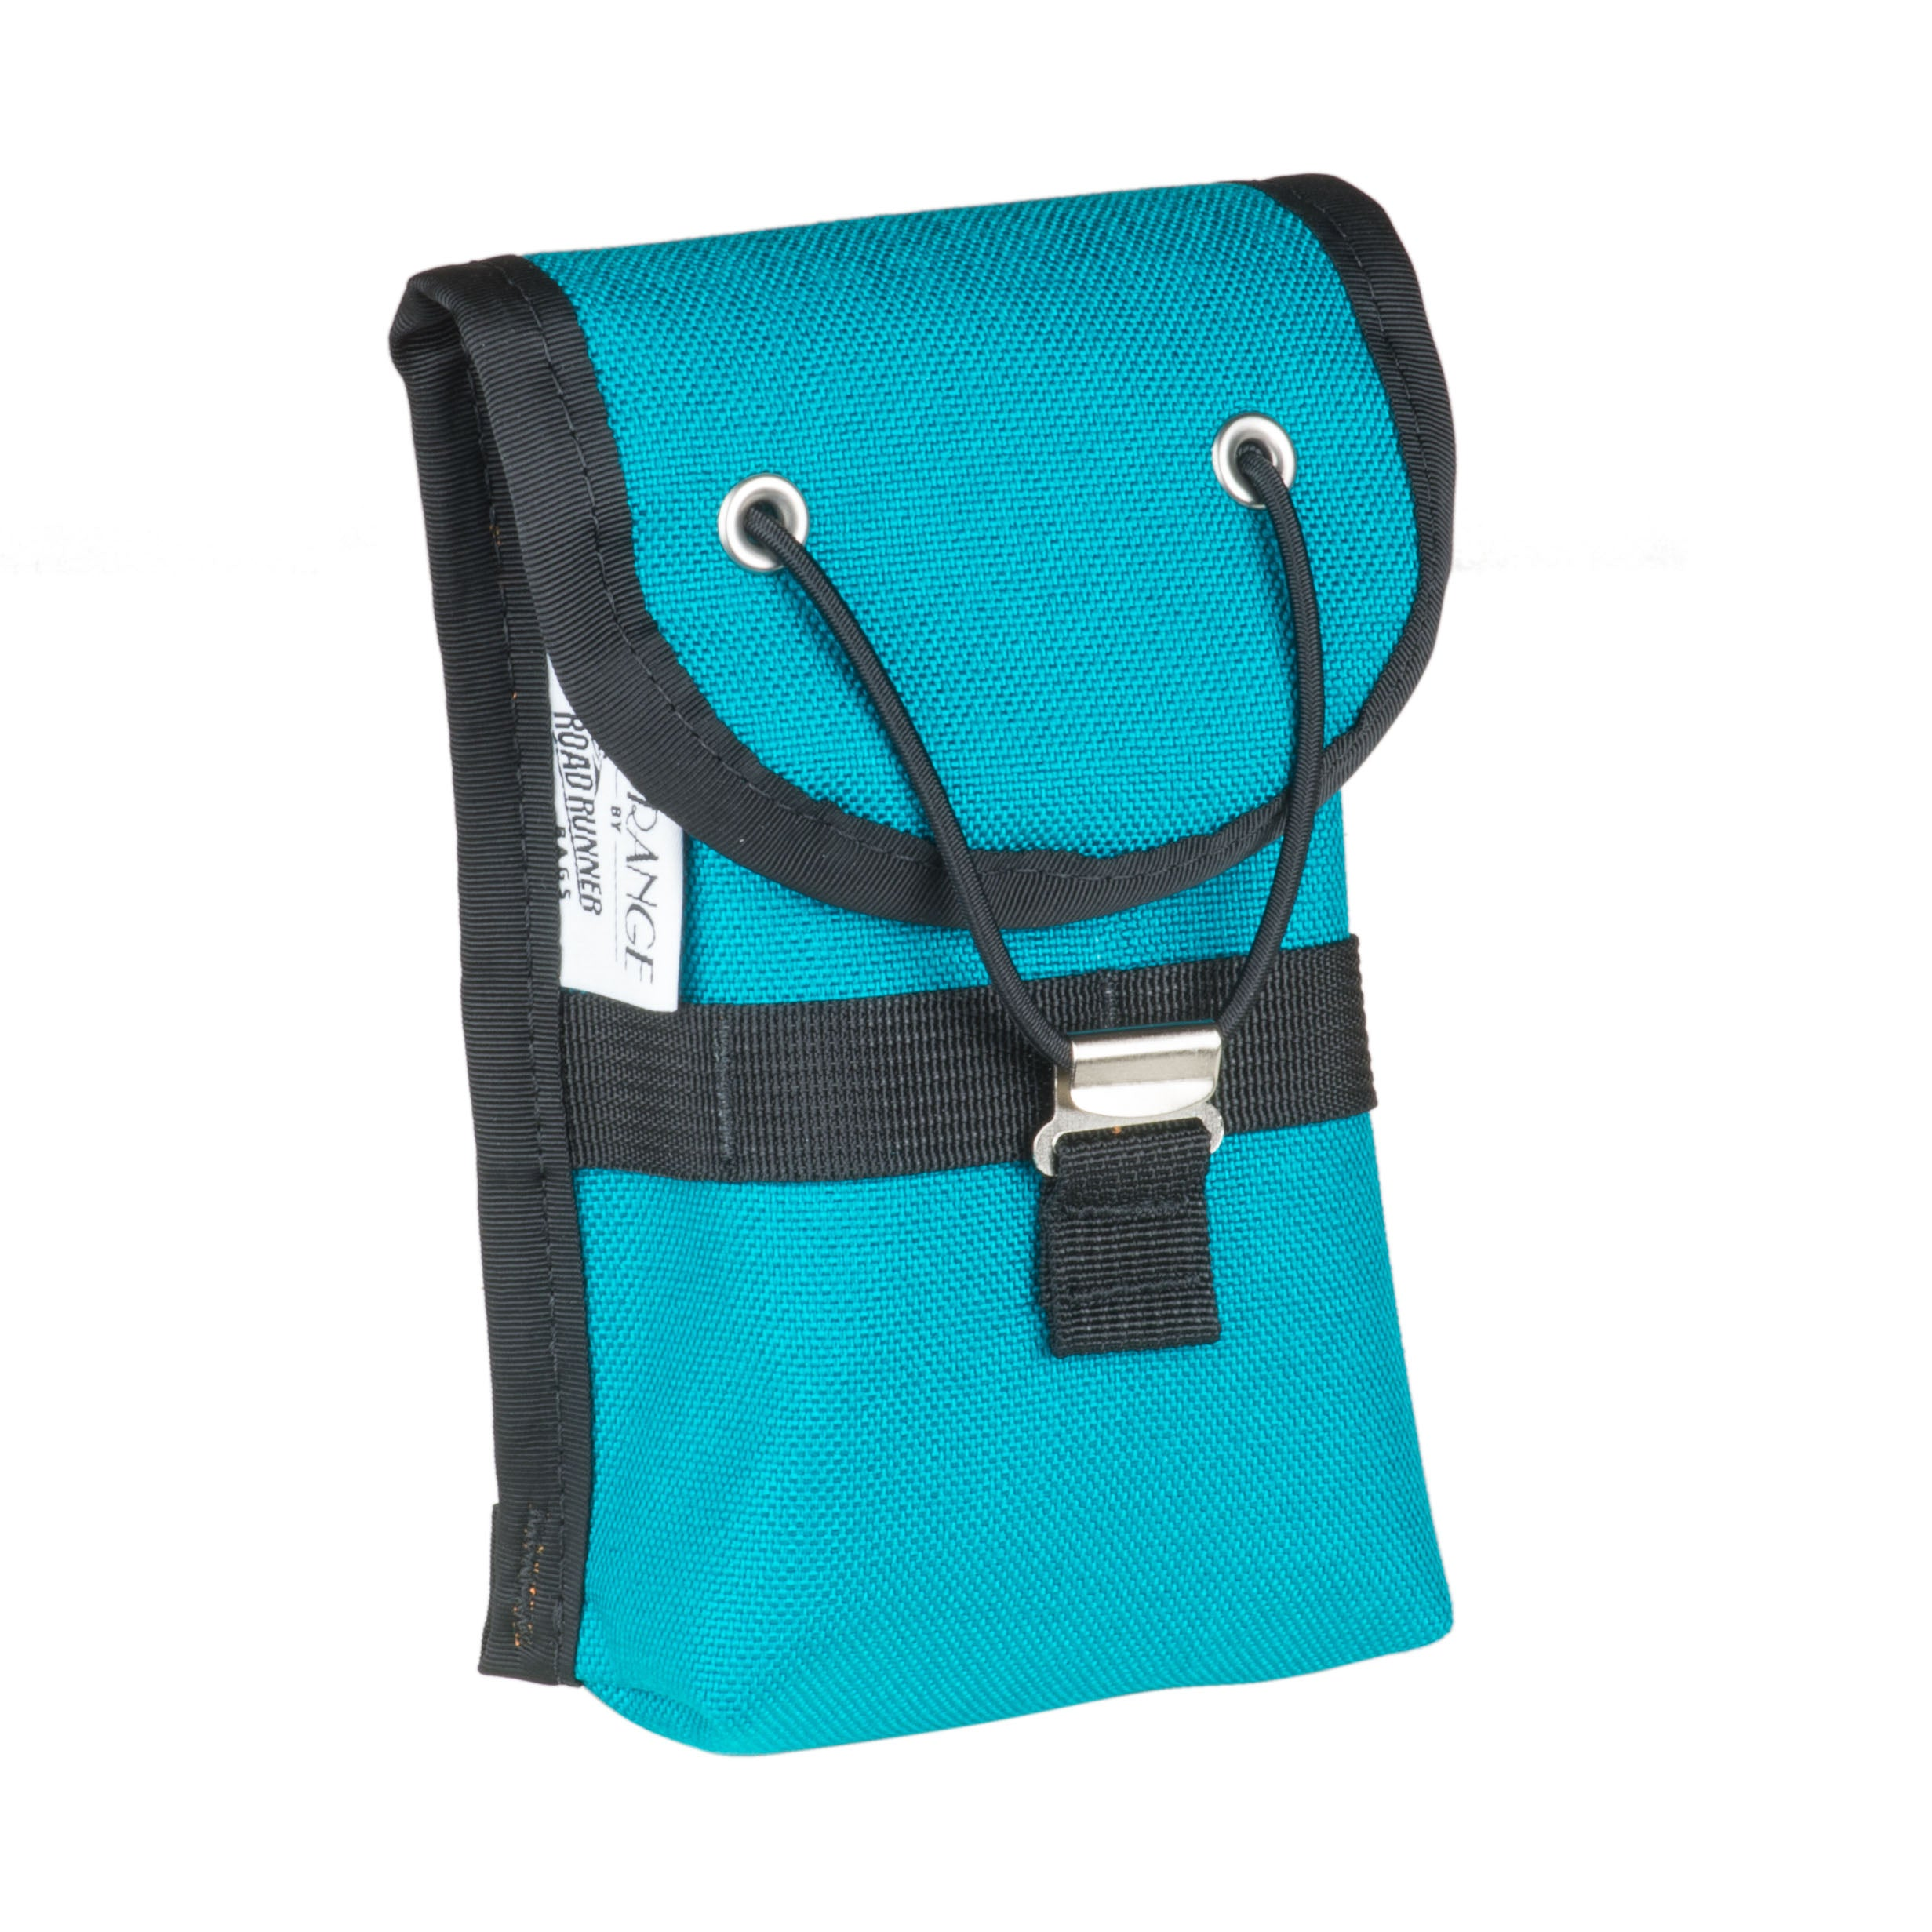 Cell Phone Pocket for Randonneur Handlebar Bag, Teal